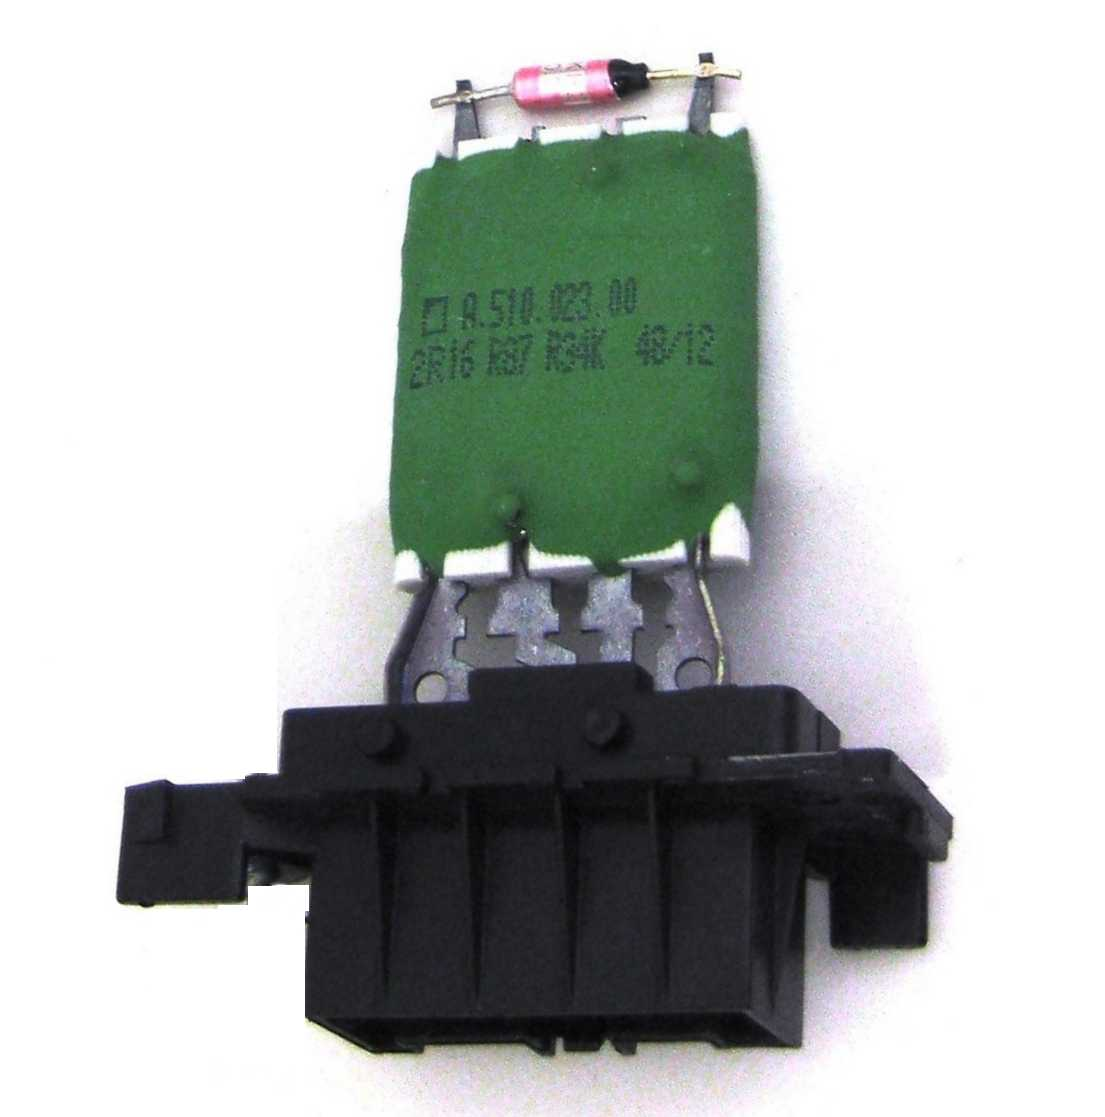 hight resolution of heater resistor for vauxhall corsa d